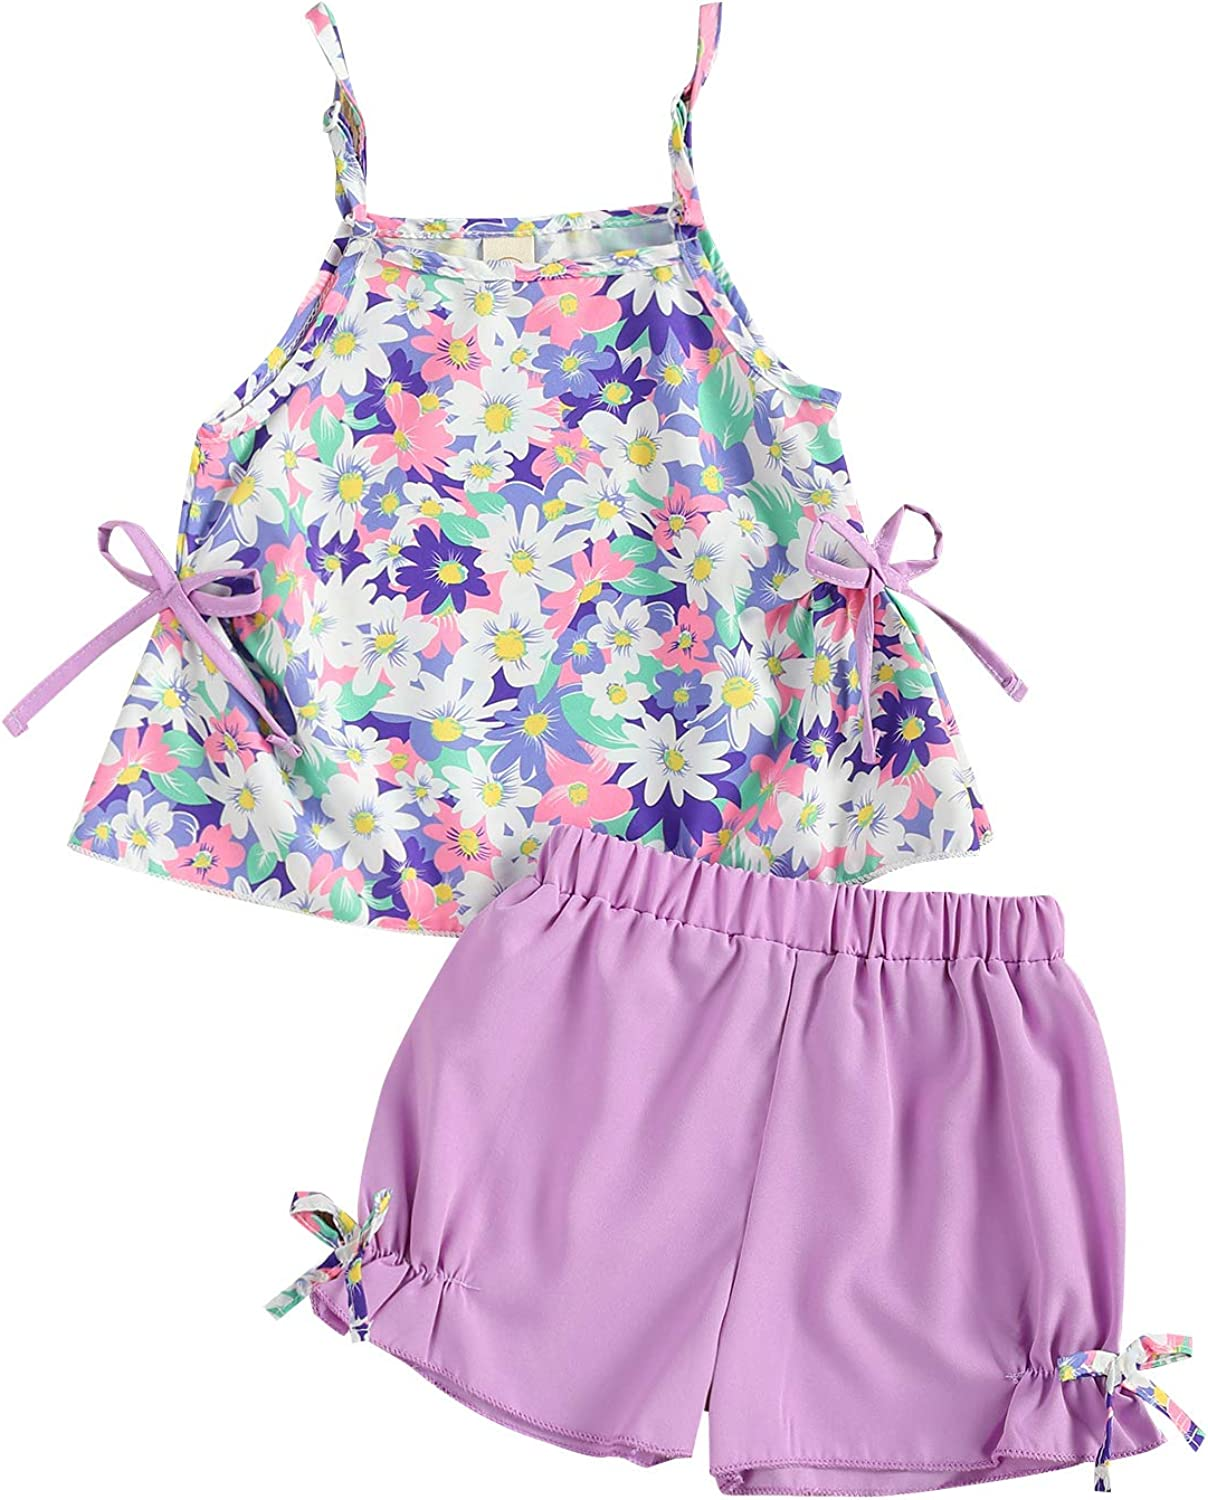 Toddler Girl Summer Outfit Clothing Set Daisy Flower Print Sleeveless Sling Tops + Shorts 2Pcs Clothes Suit